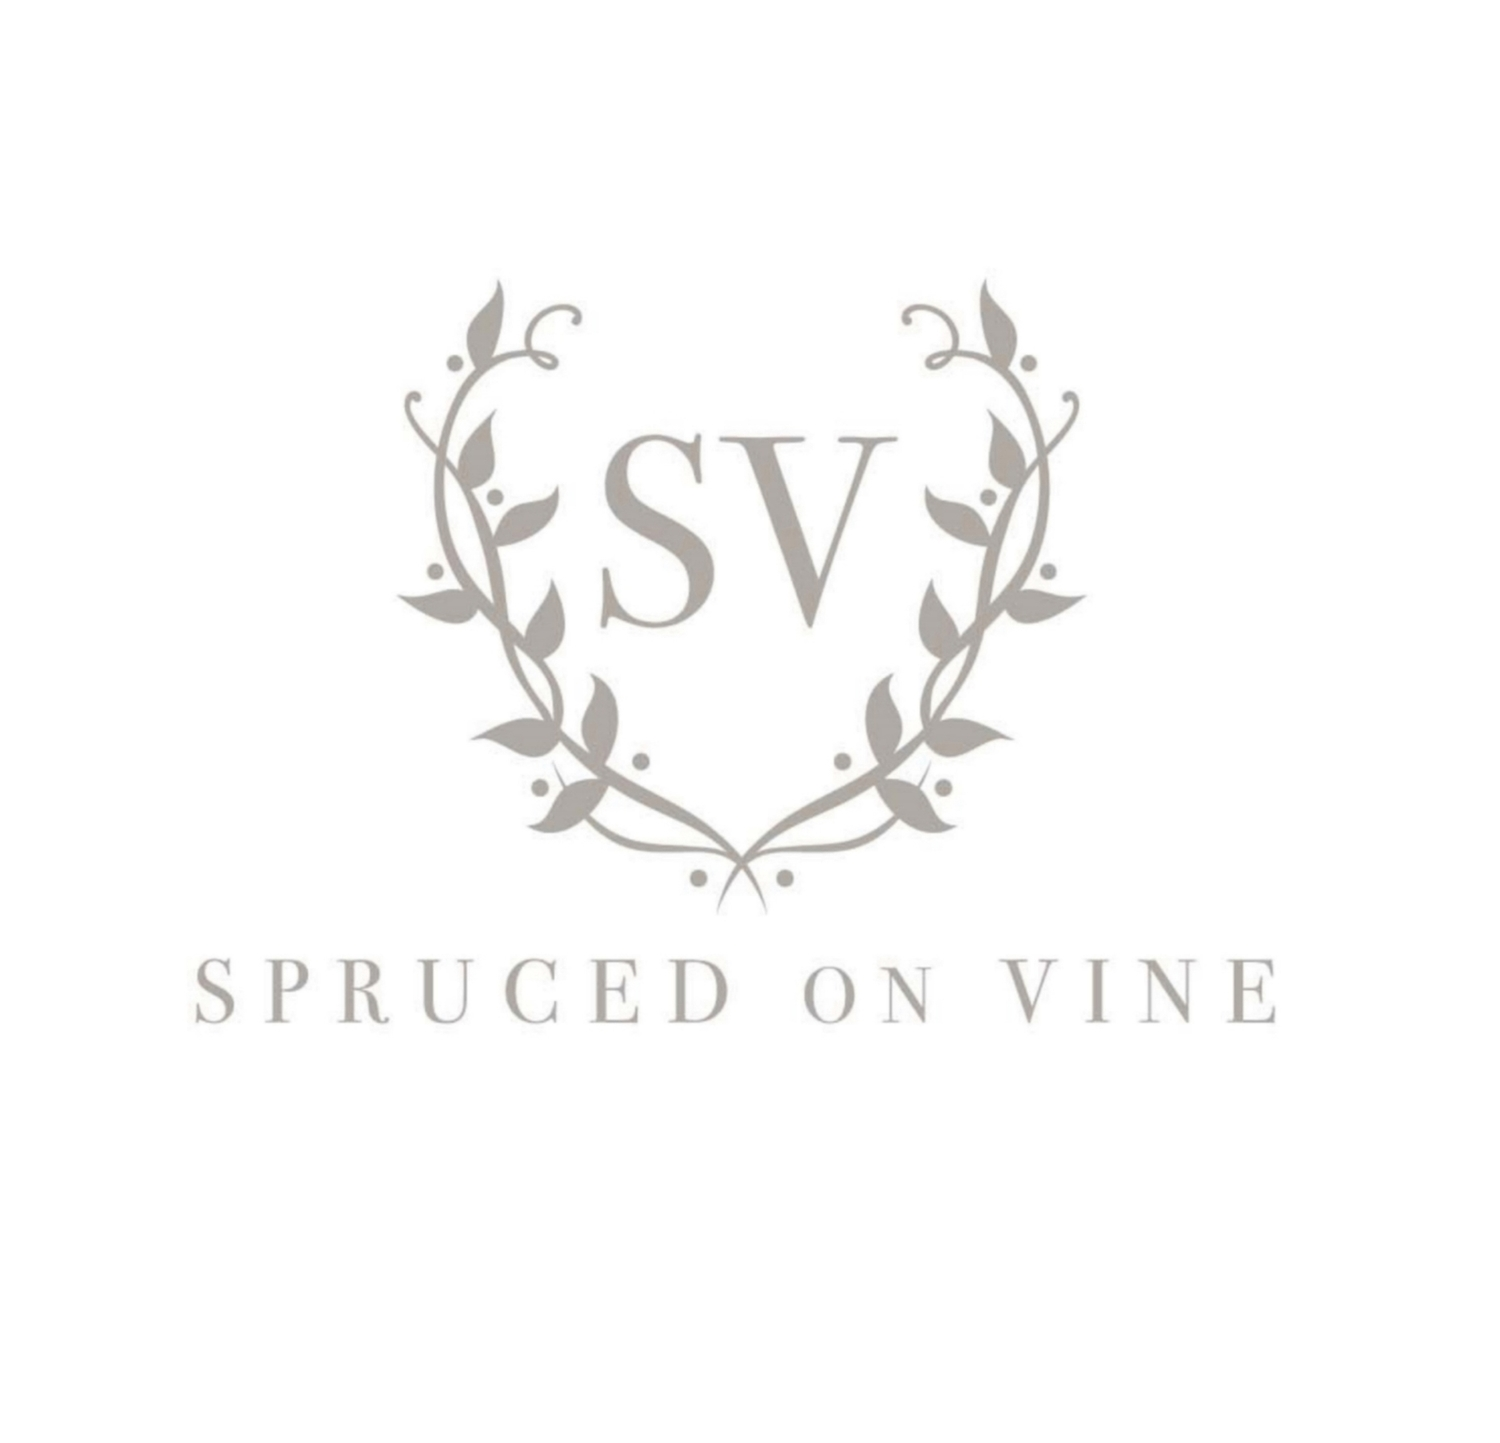 Spruced on Vine